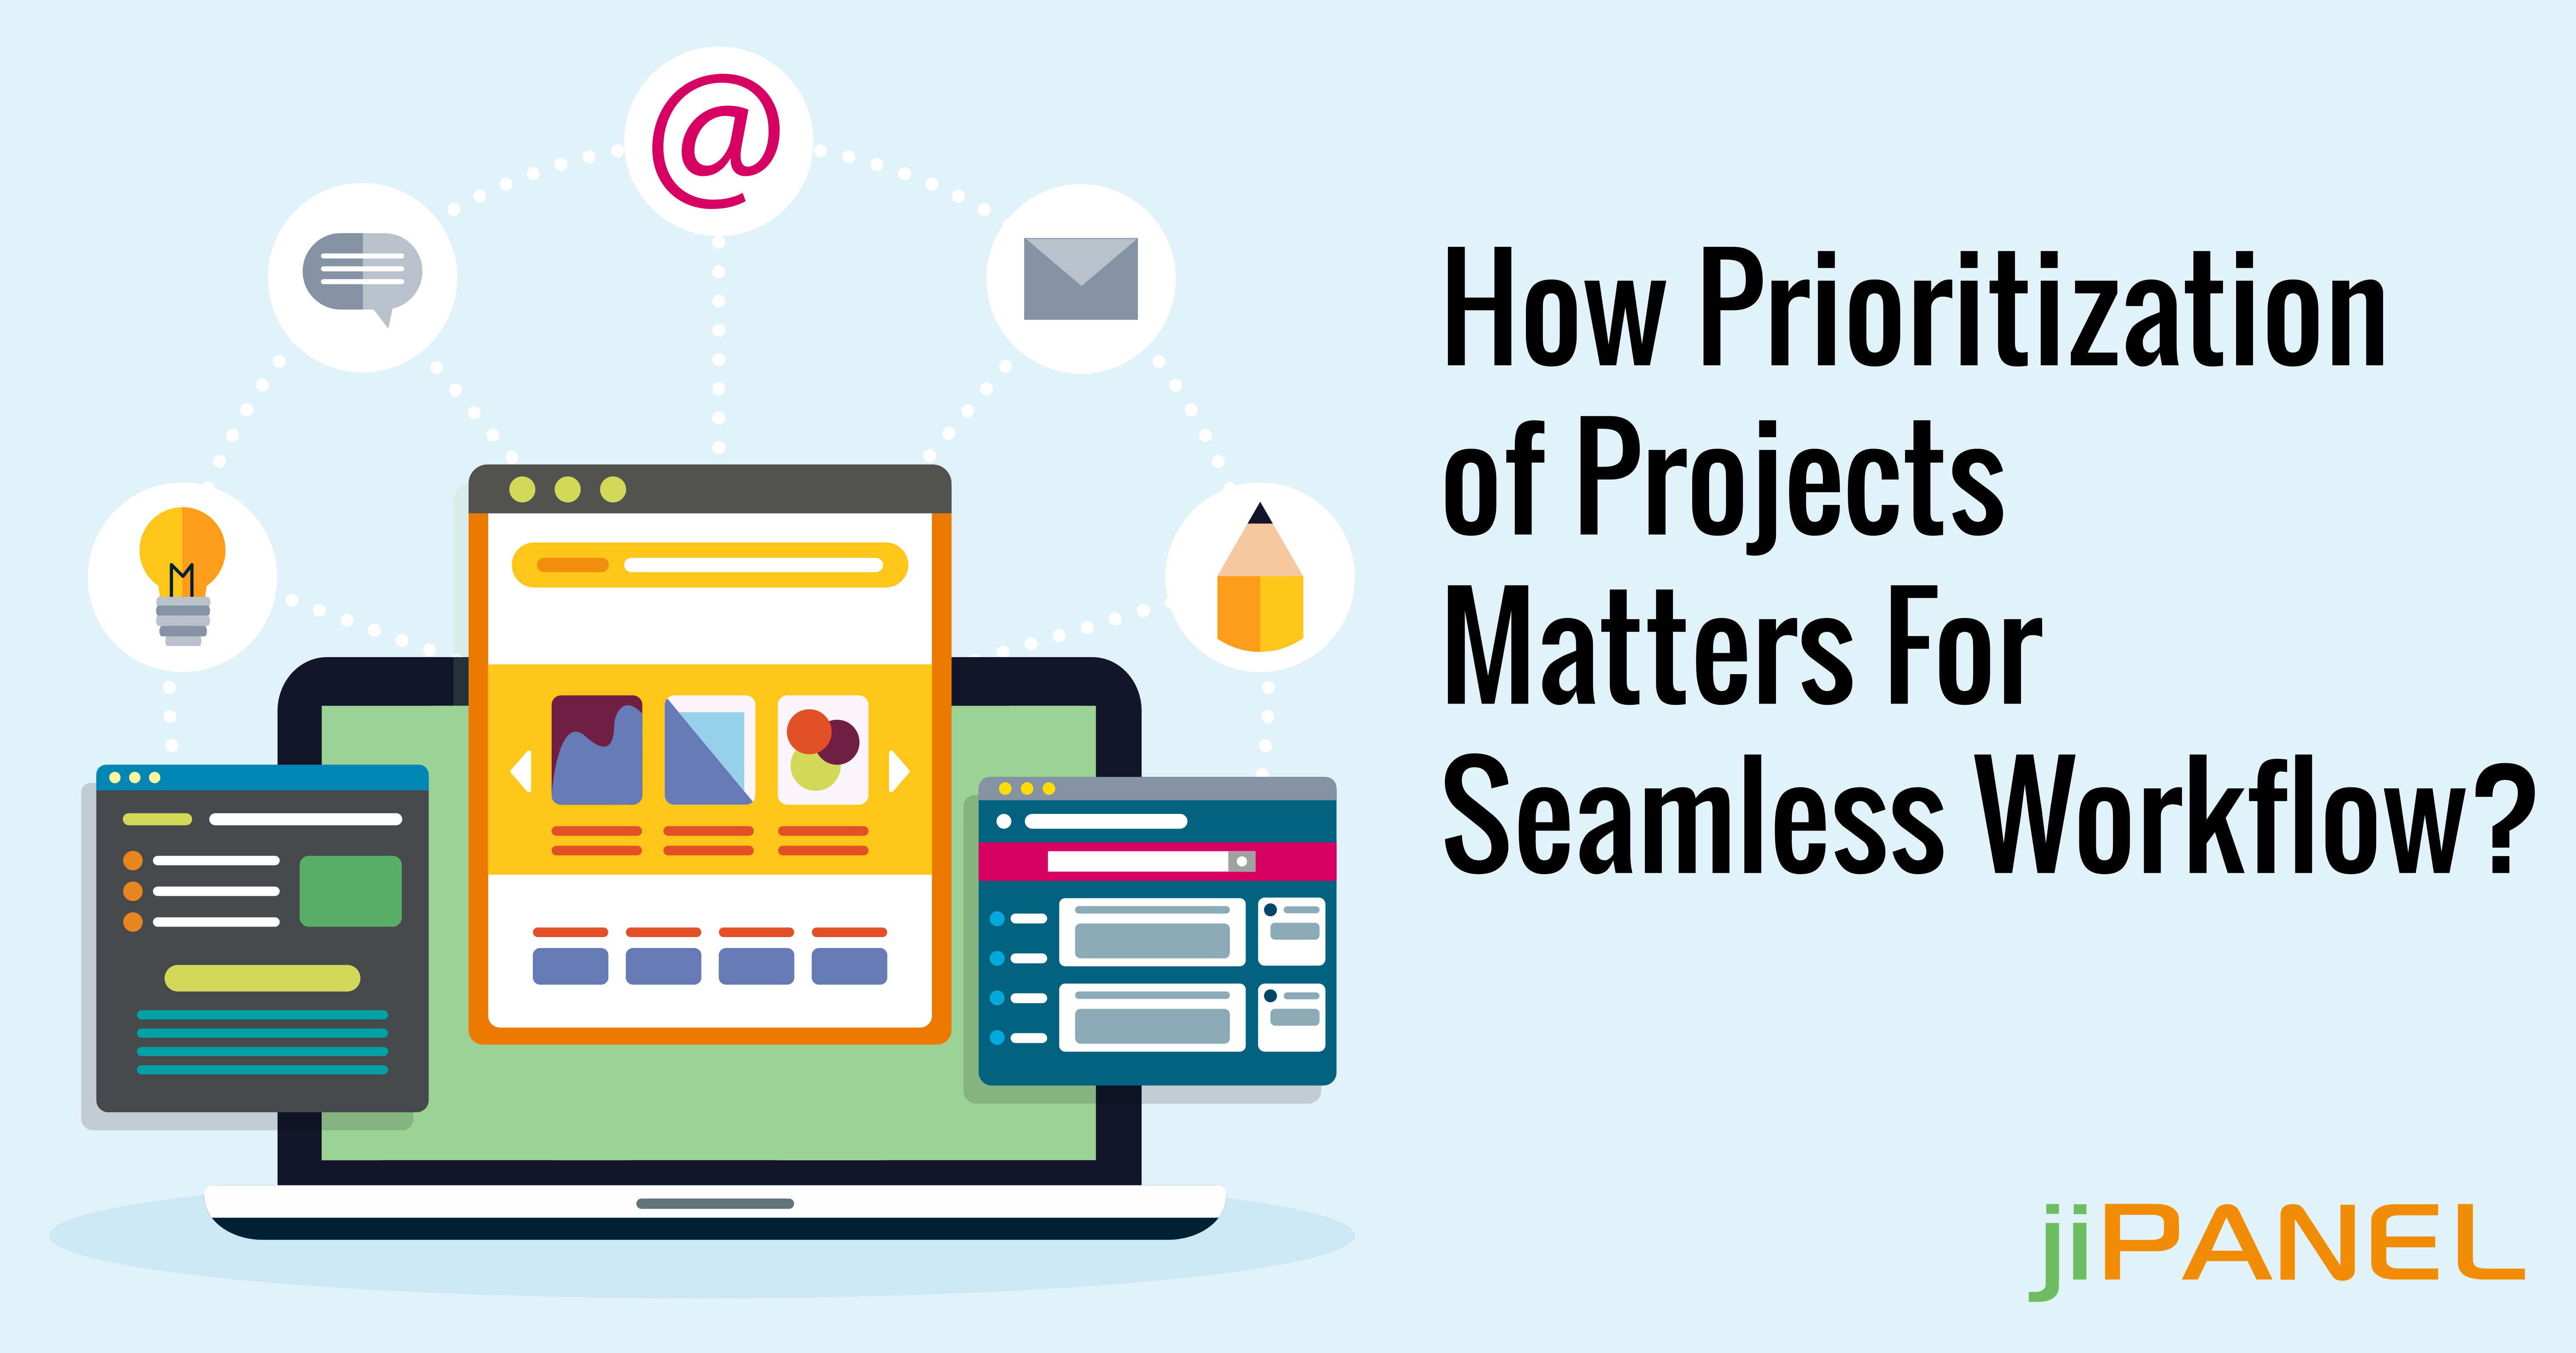 How Prioritization of Projects Matters For Seamless Workflow?